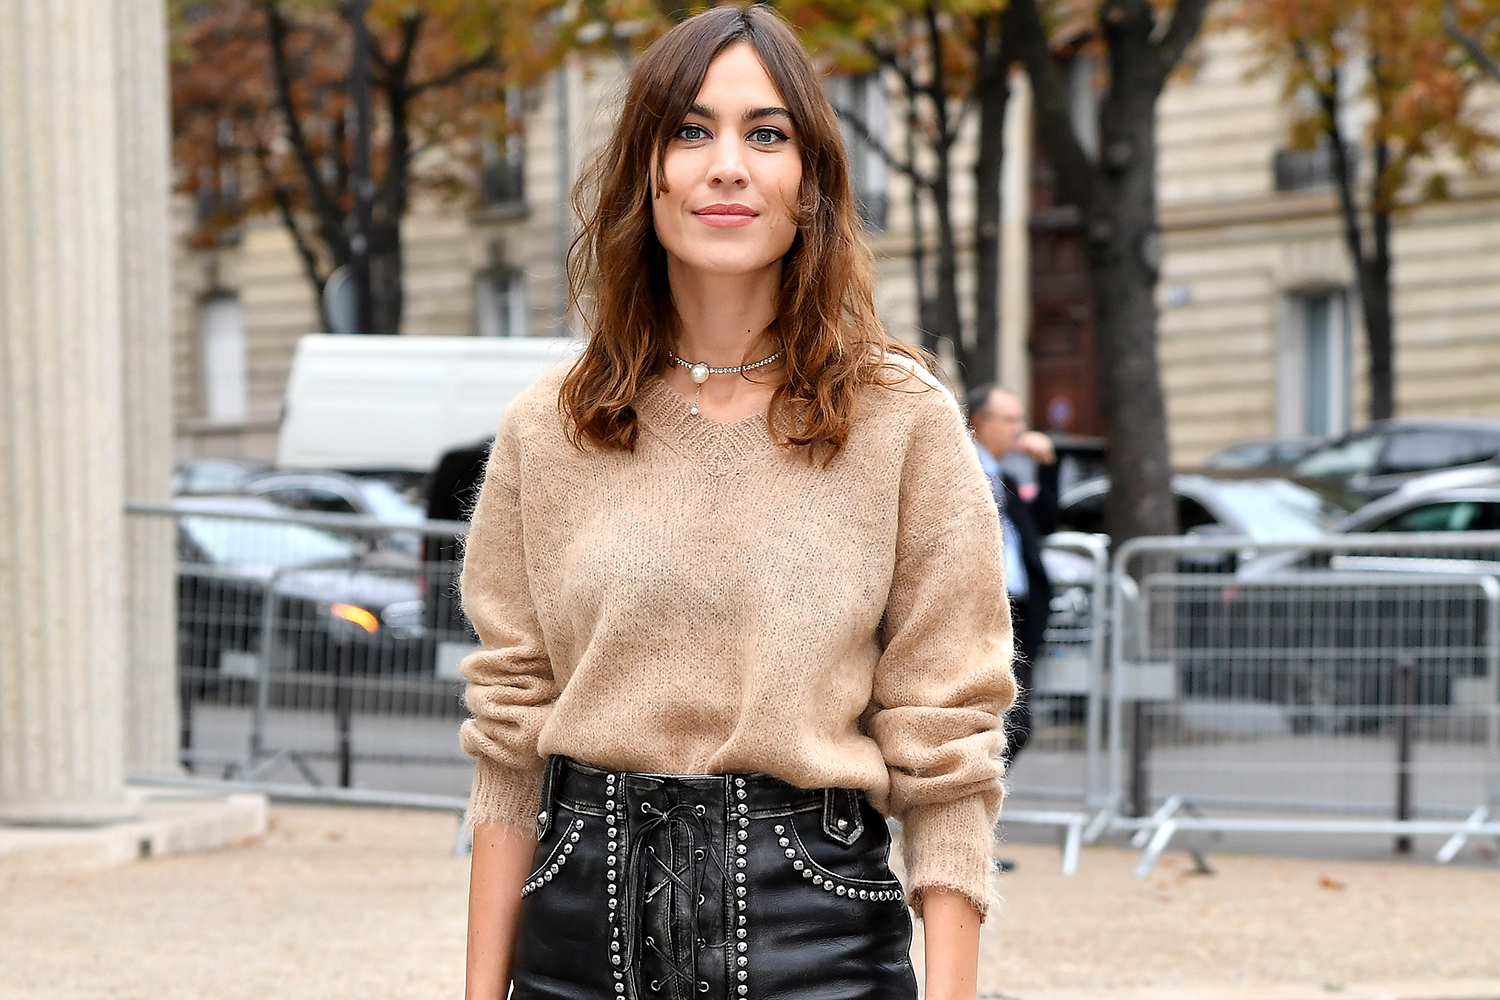 Fotos Alexa Chung nudes (44 photos), Ass, Paparazzi, Twitter, cameltoe 2019